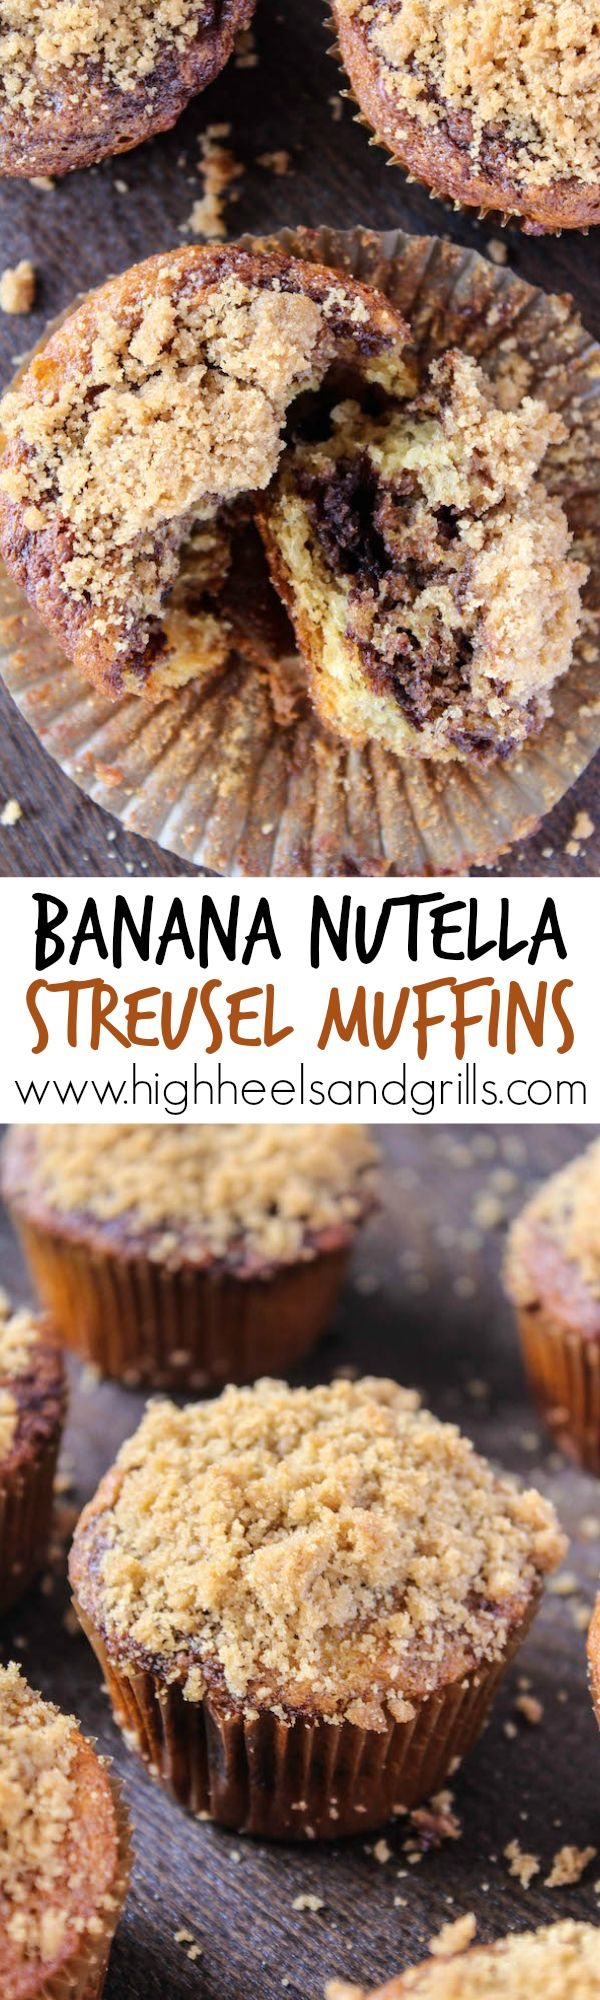 Banana Nutella Streusel Muffins - These are the most moist muffins I have ever had! Plus, Nutella. Yum.